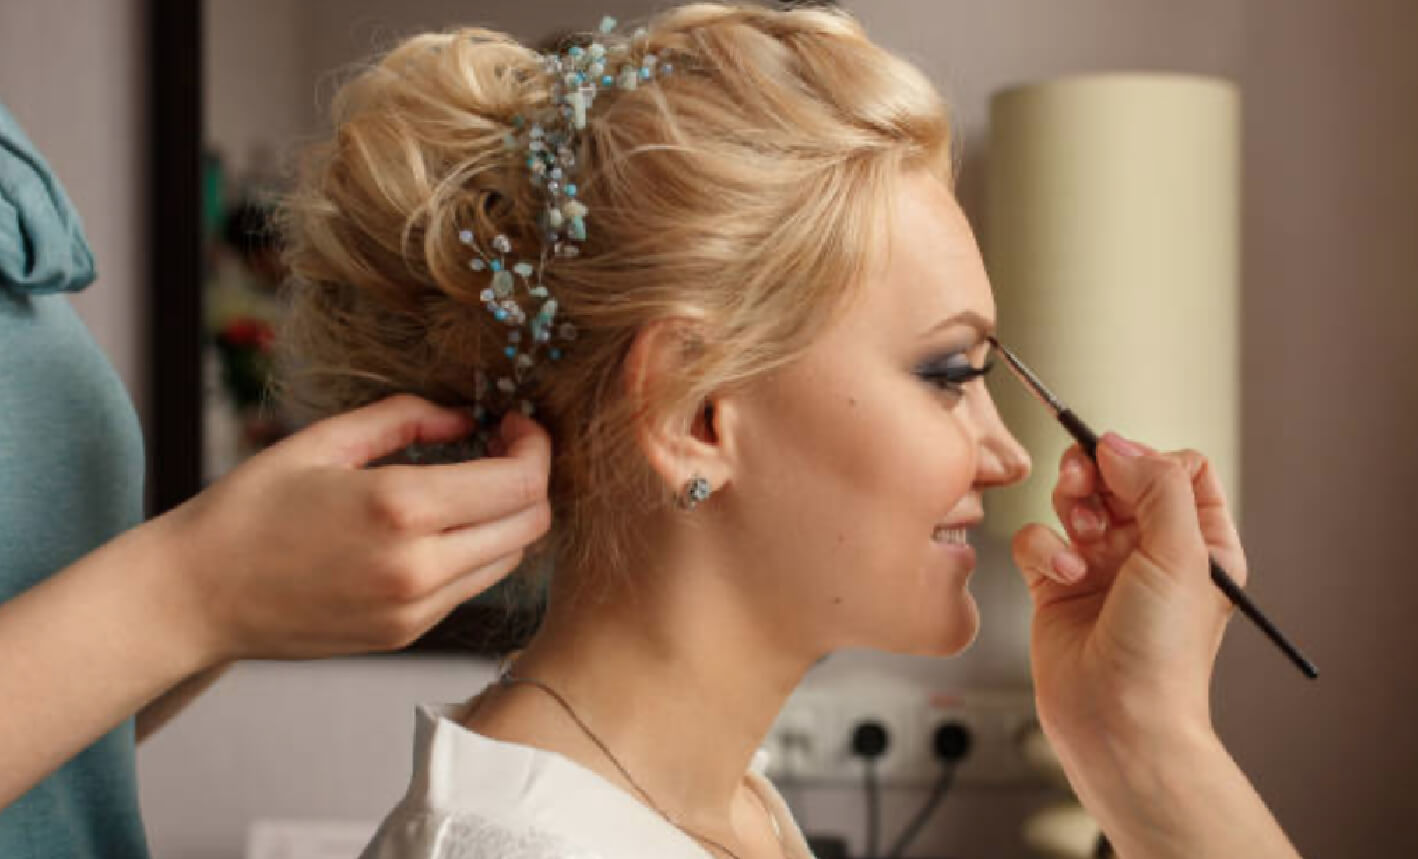 Your wedding day is one of the most treasured days of your life; let us help you to look and feel your absolute best on your special day. Pop into Bennetts Hair and Beauty for your free consultation, where we can help you pick from a selection of tailored packages which can be tailored to suit your budget.